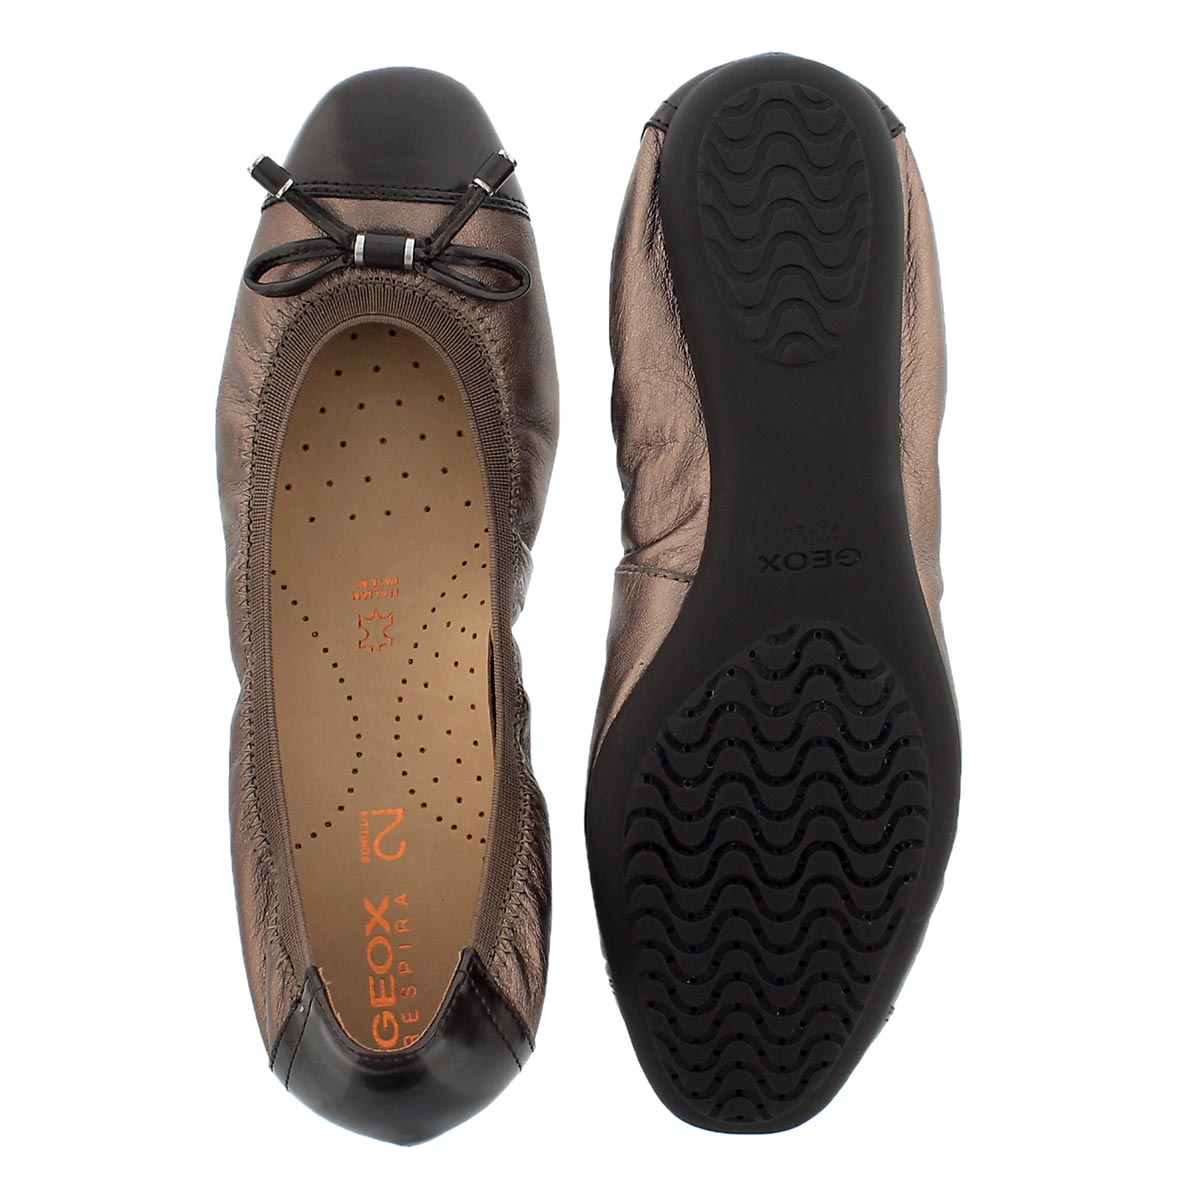 Lds Lola2Fit lead leather ballerina flat